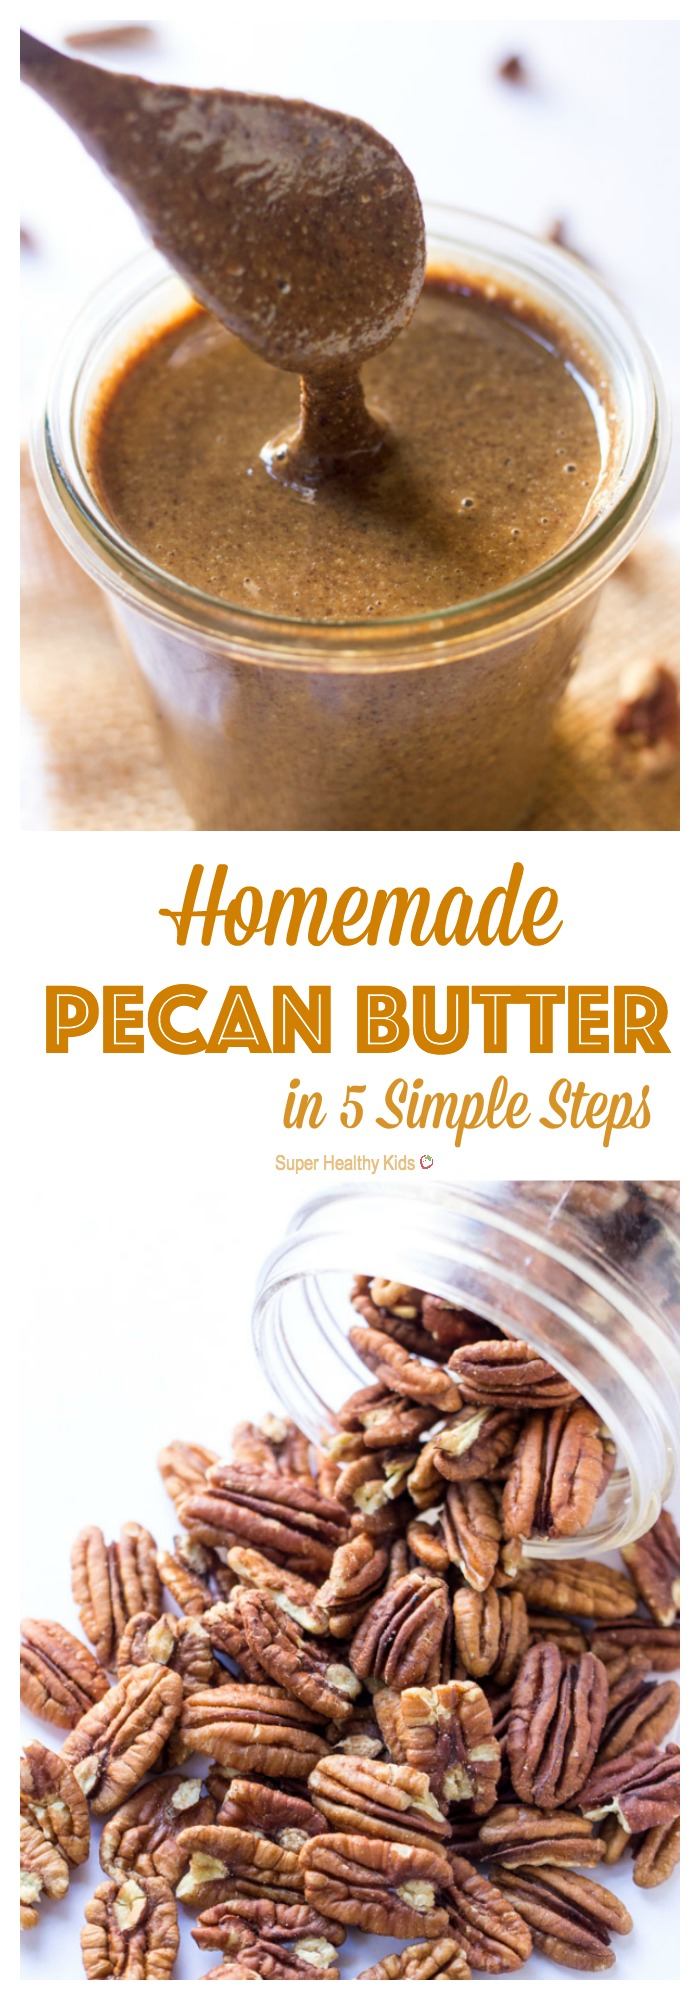 Homemade Pecan Butter 5 Simple Steps Healthy Ideas For Kids